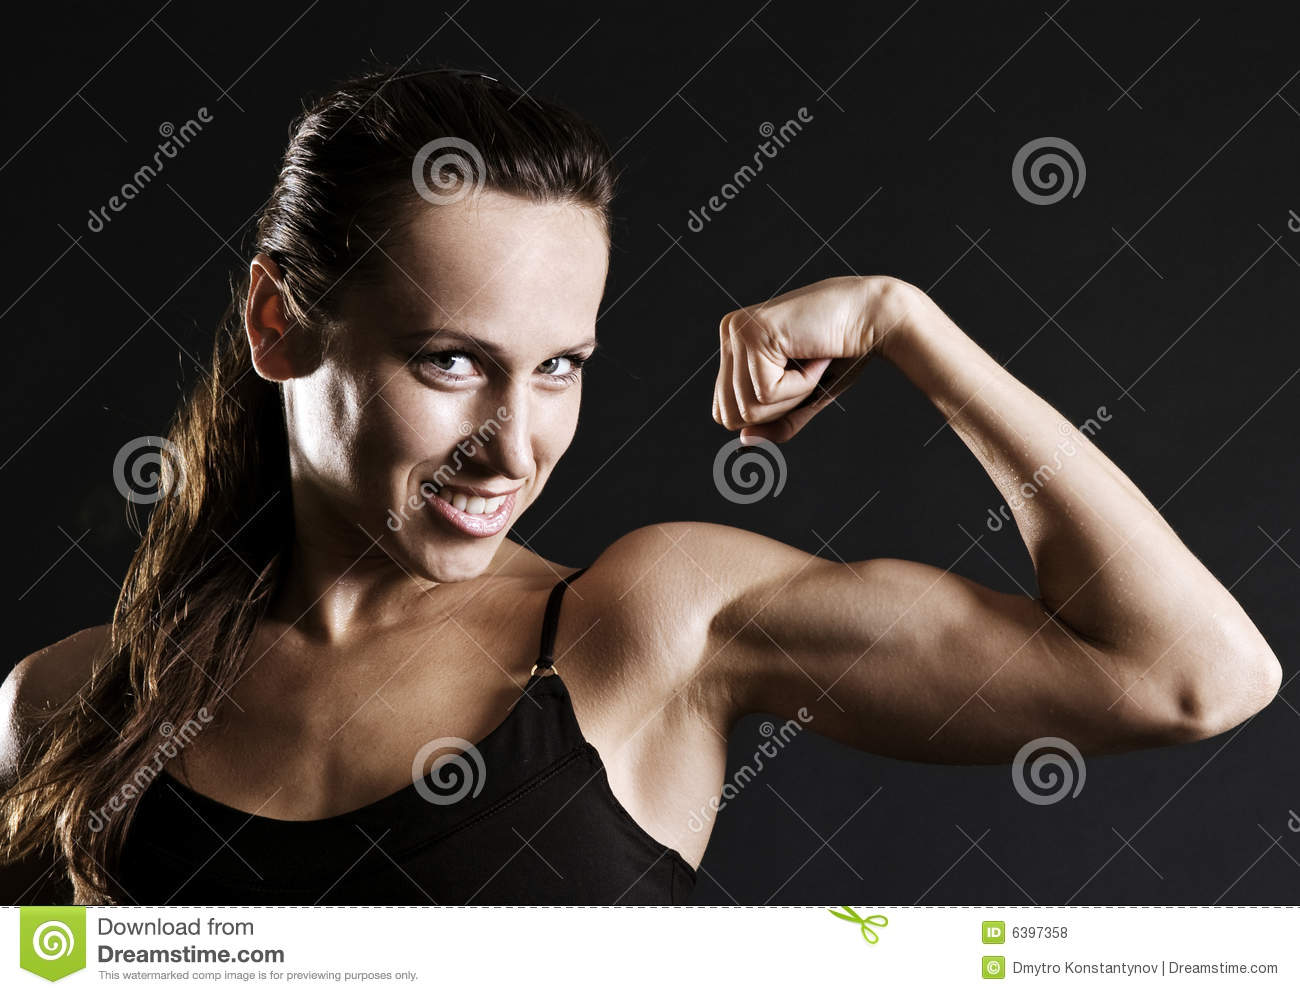 Smiley sportswoman showing her muscles